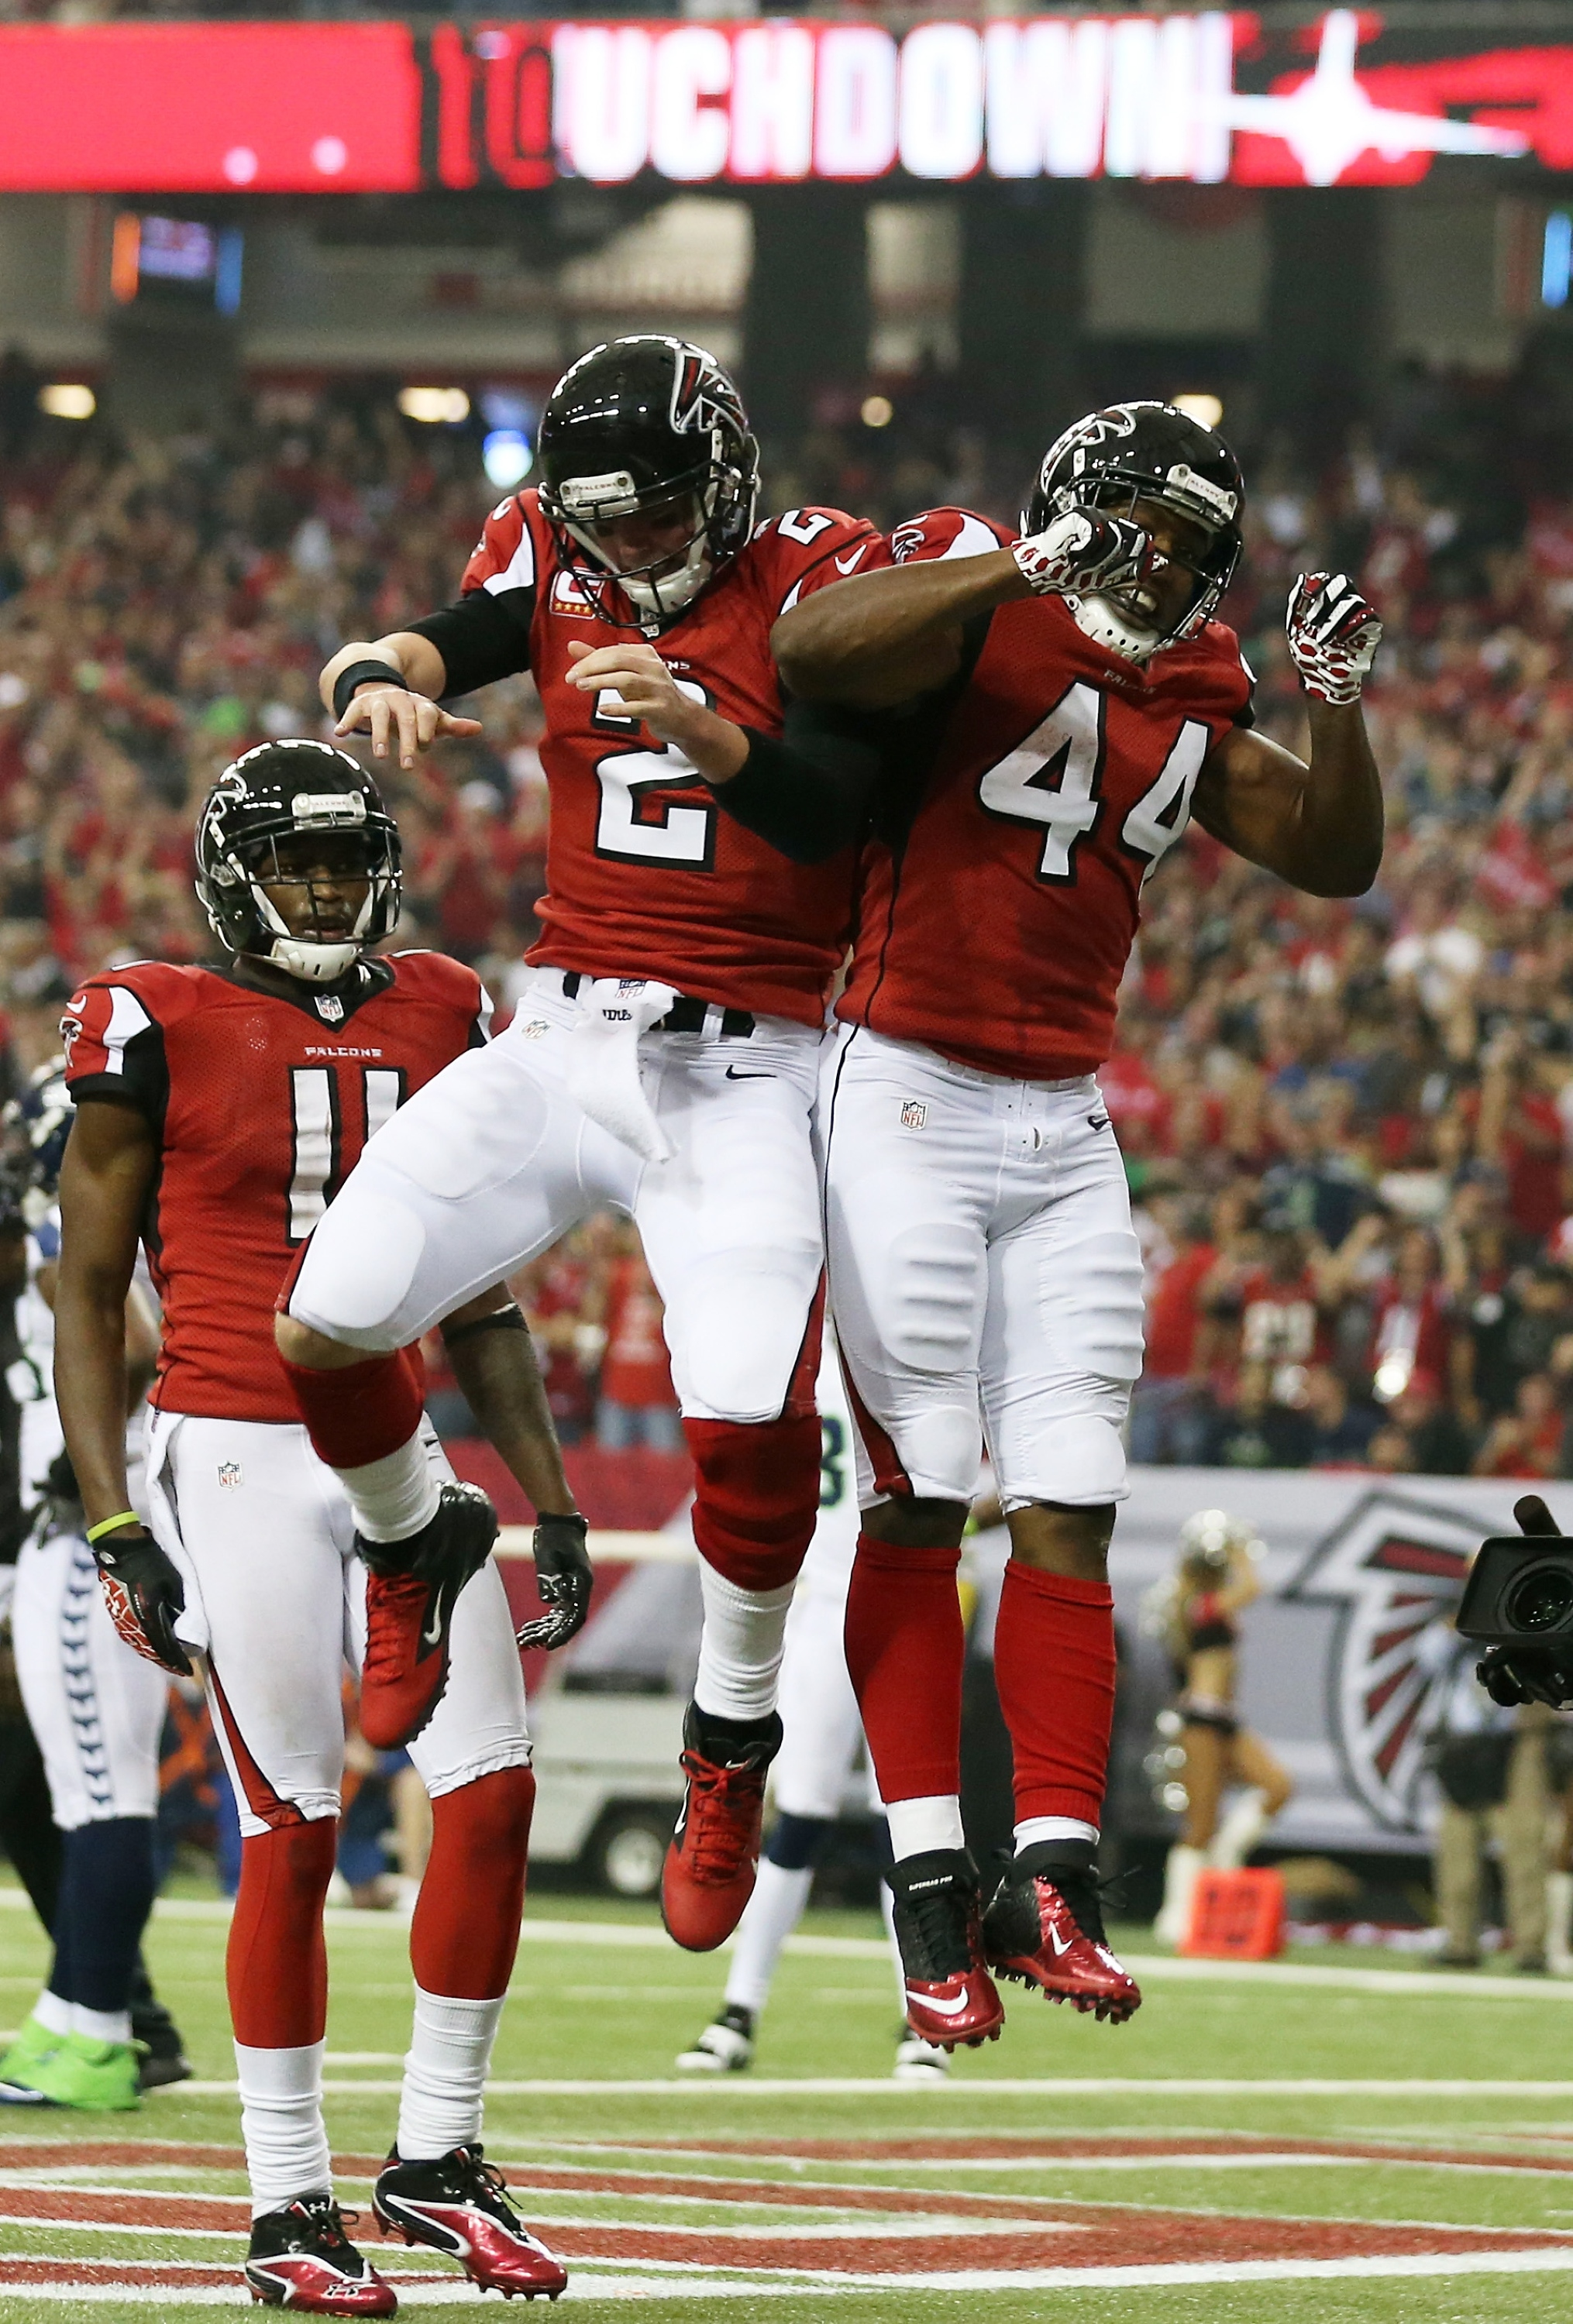 The city of Atlanta is beginning to believe in Matt Ryan, left, Jason Snelling and the Falcons. (Getty Images)